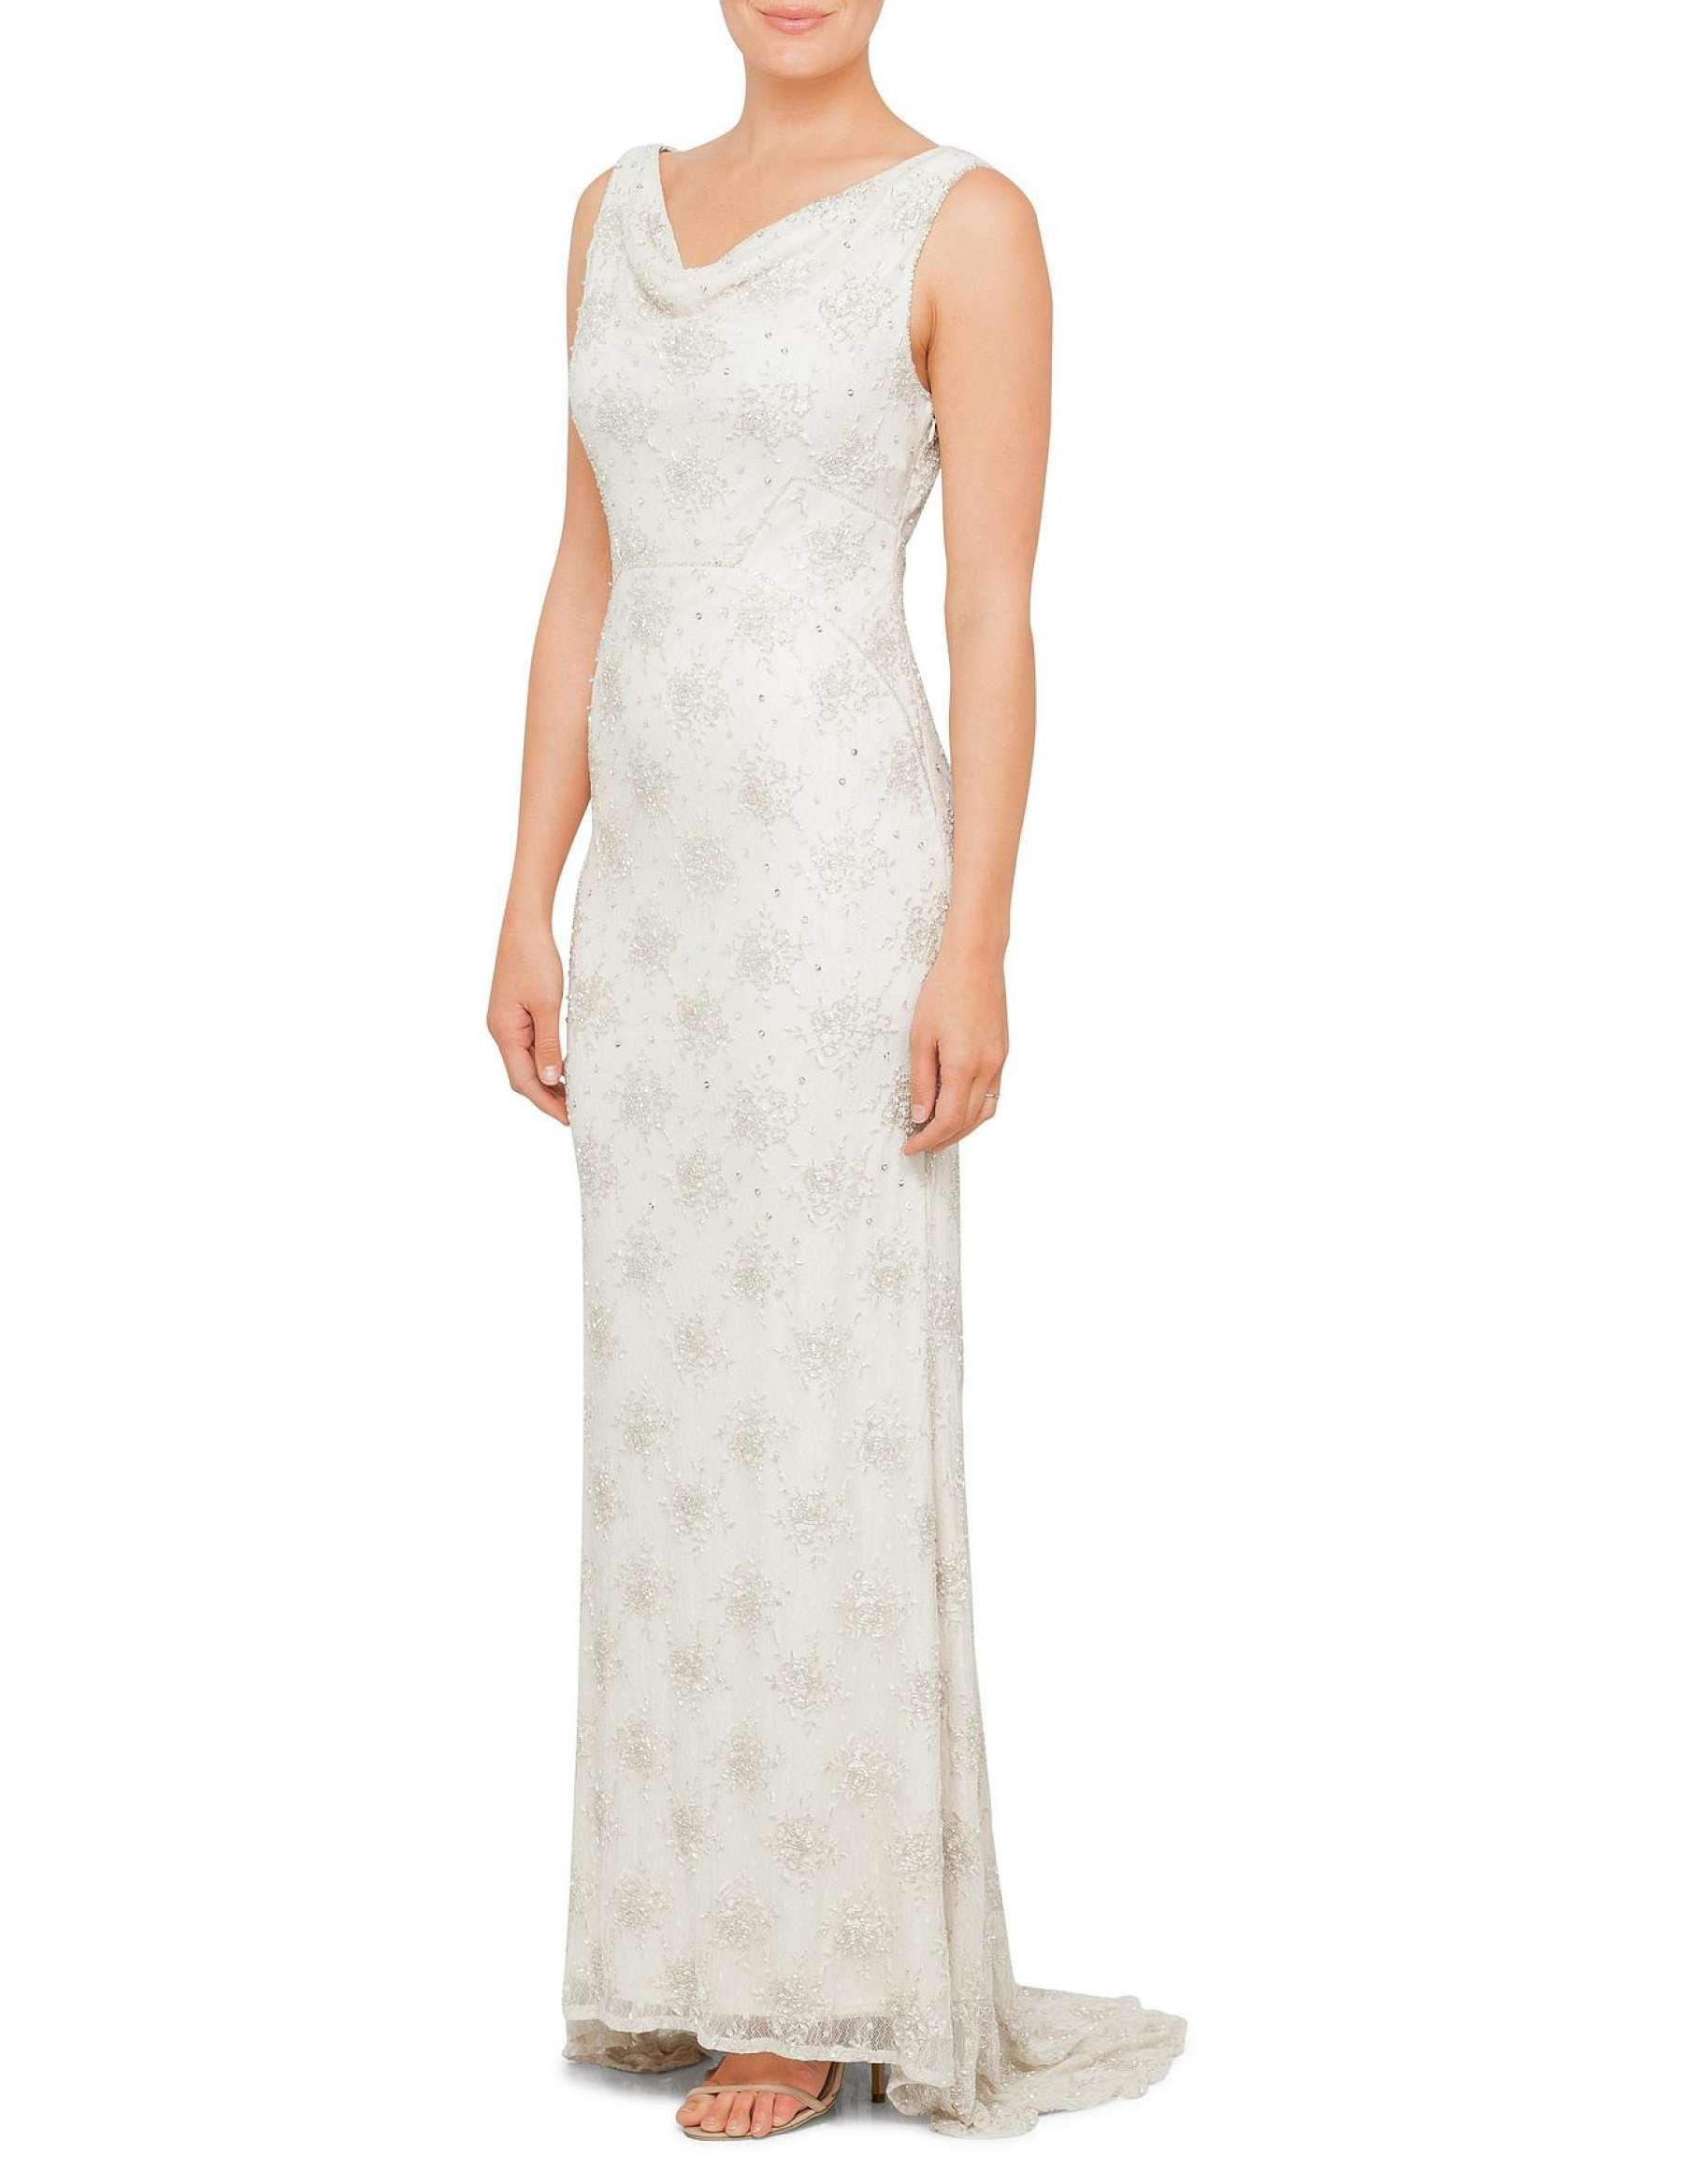 David Jones - Phase Eight Aurora Bridal Dress | wedding dresses ...